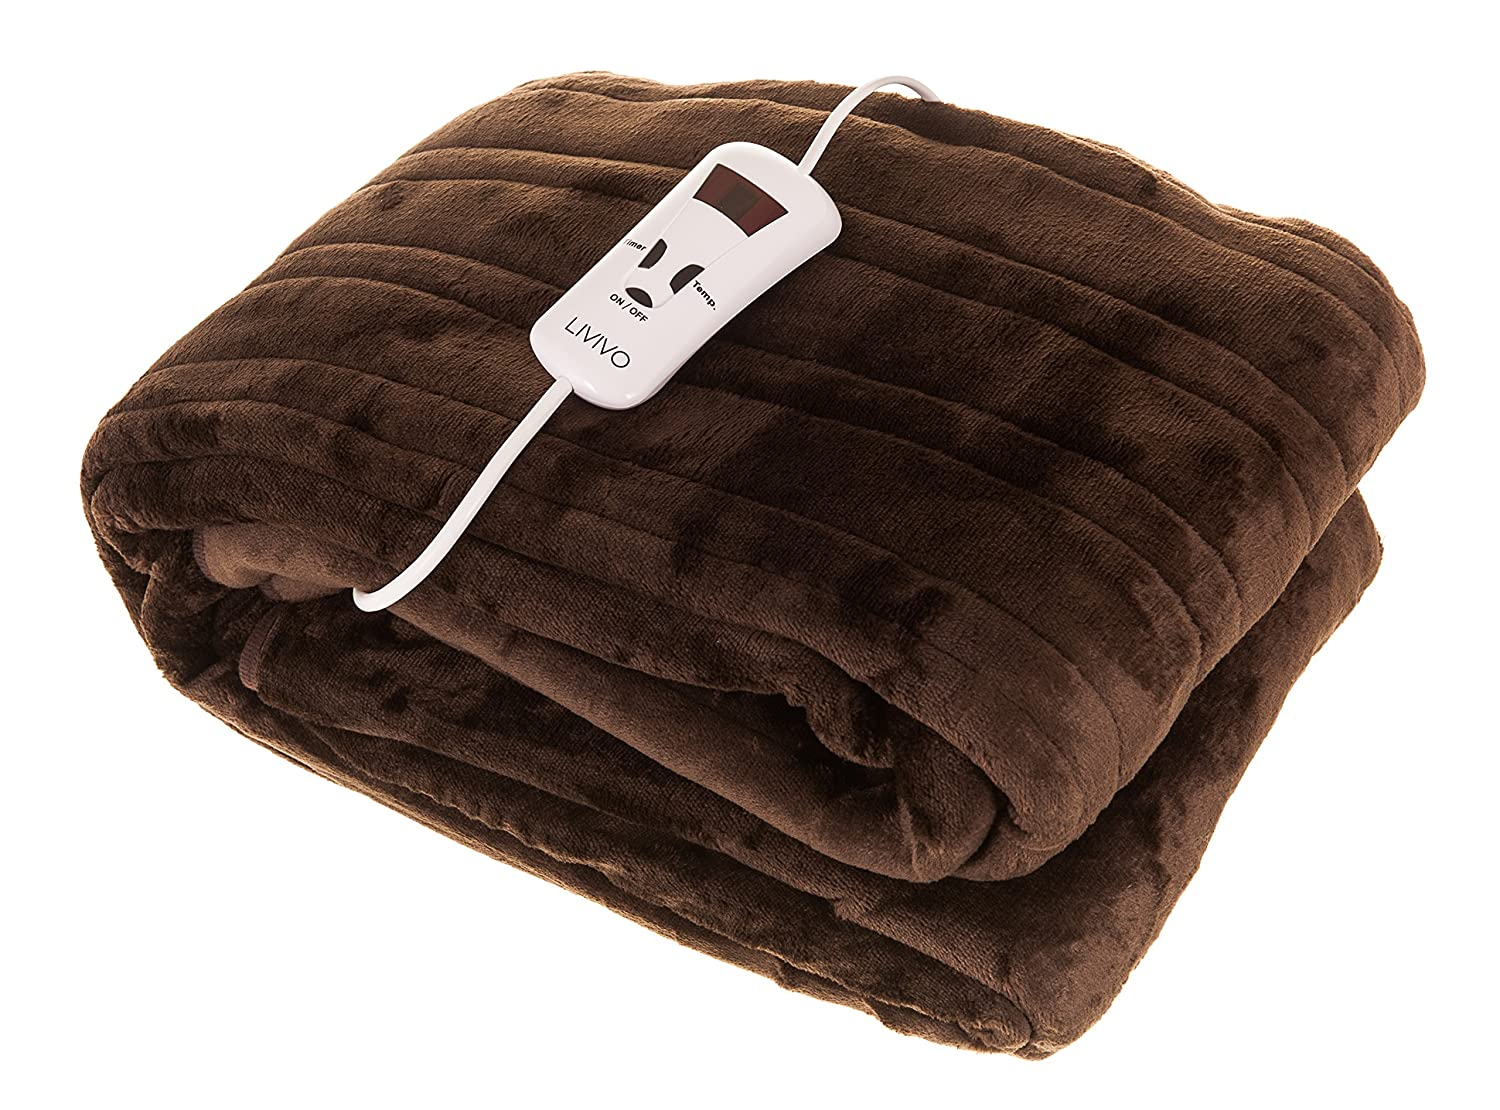 FINEWAY@ HEATED ELECTRIC OVER BLANKET – ULTRA SOFT CHOCOLATE MICRO FLEECE THROW WITH 10 HEAT SETTINGS AND TIMER FUNCTION – SIZE 160X120CM - EASY TO USE AND MACHINE WASHABLE